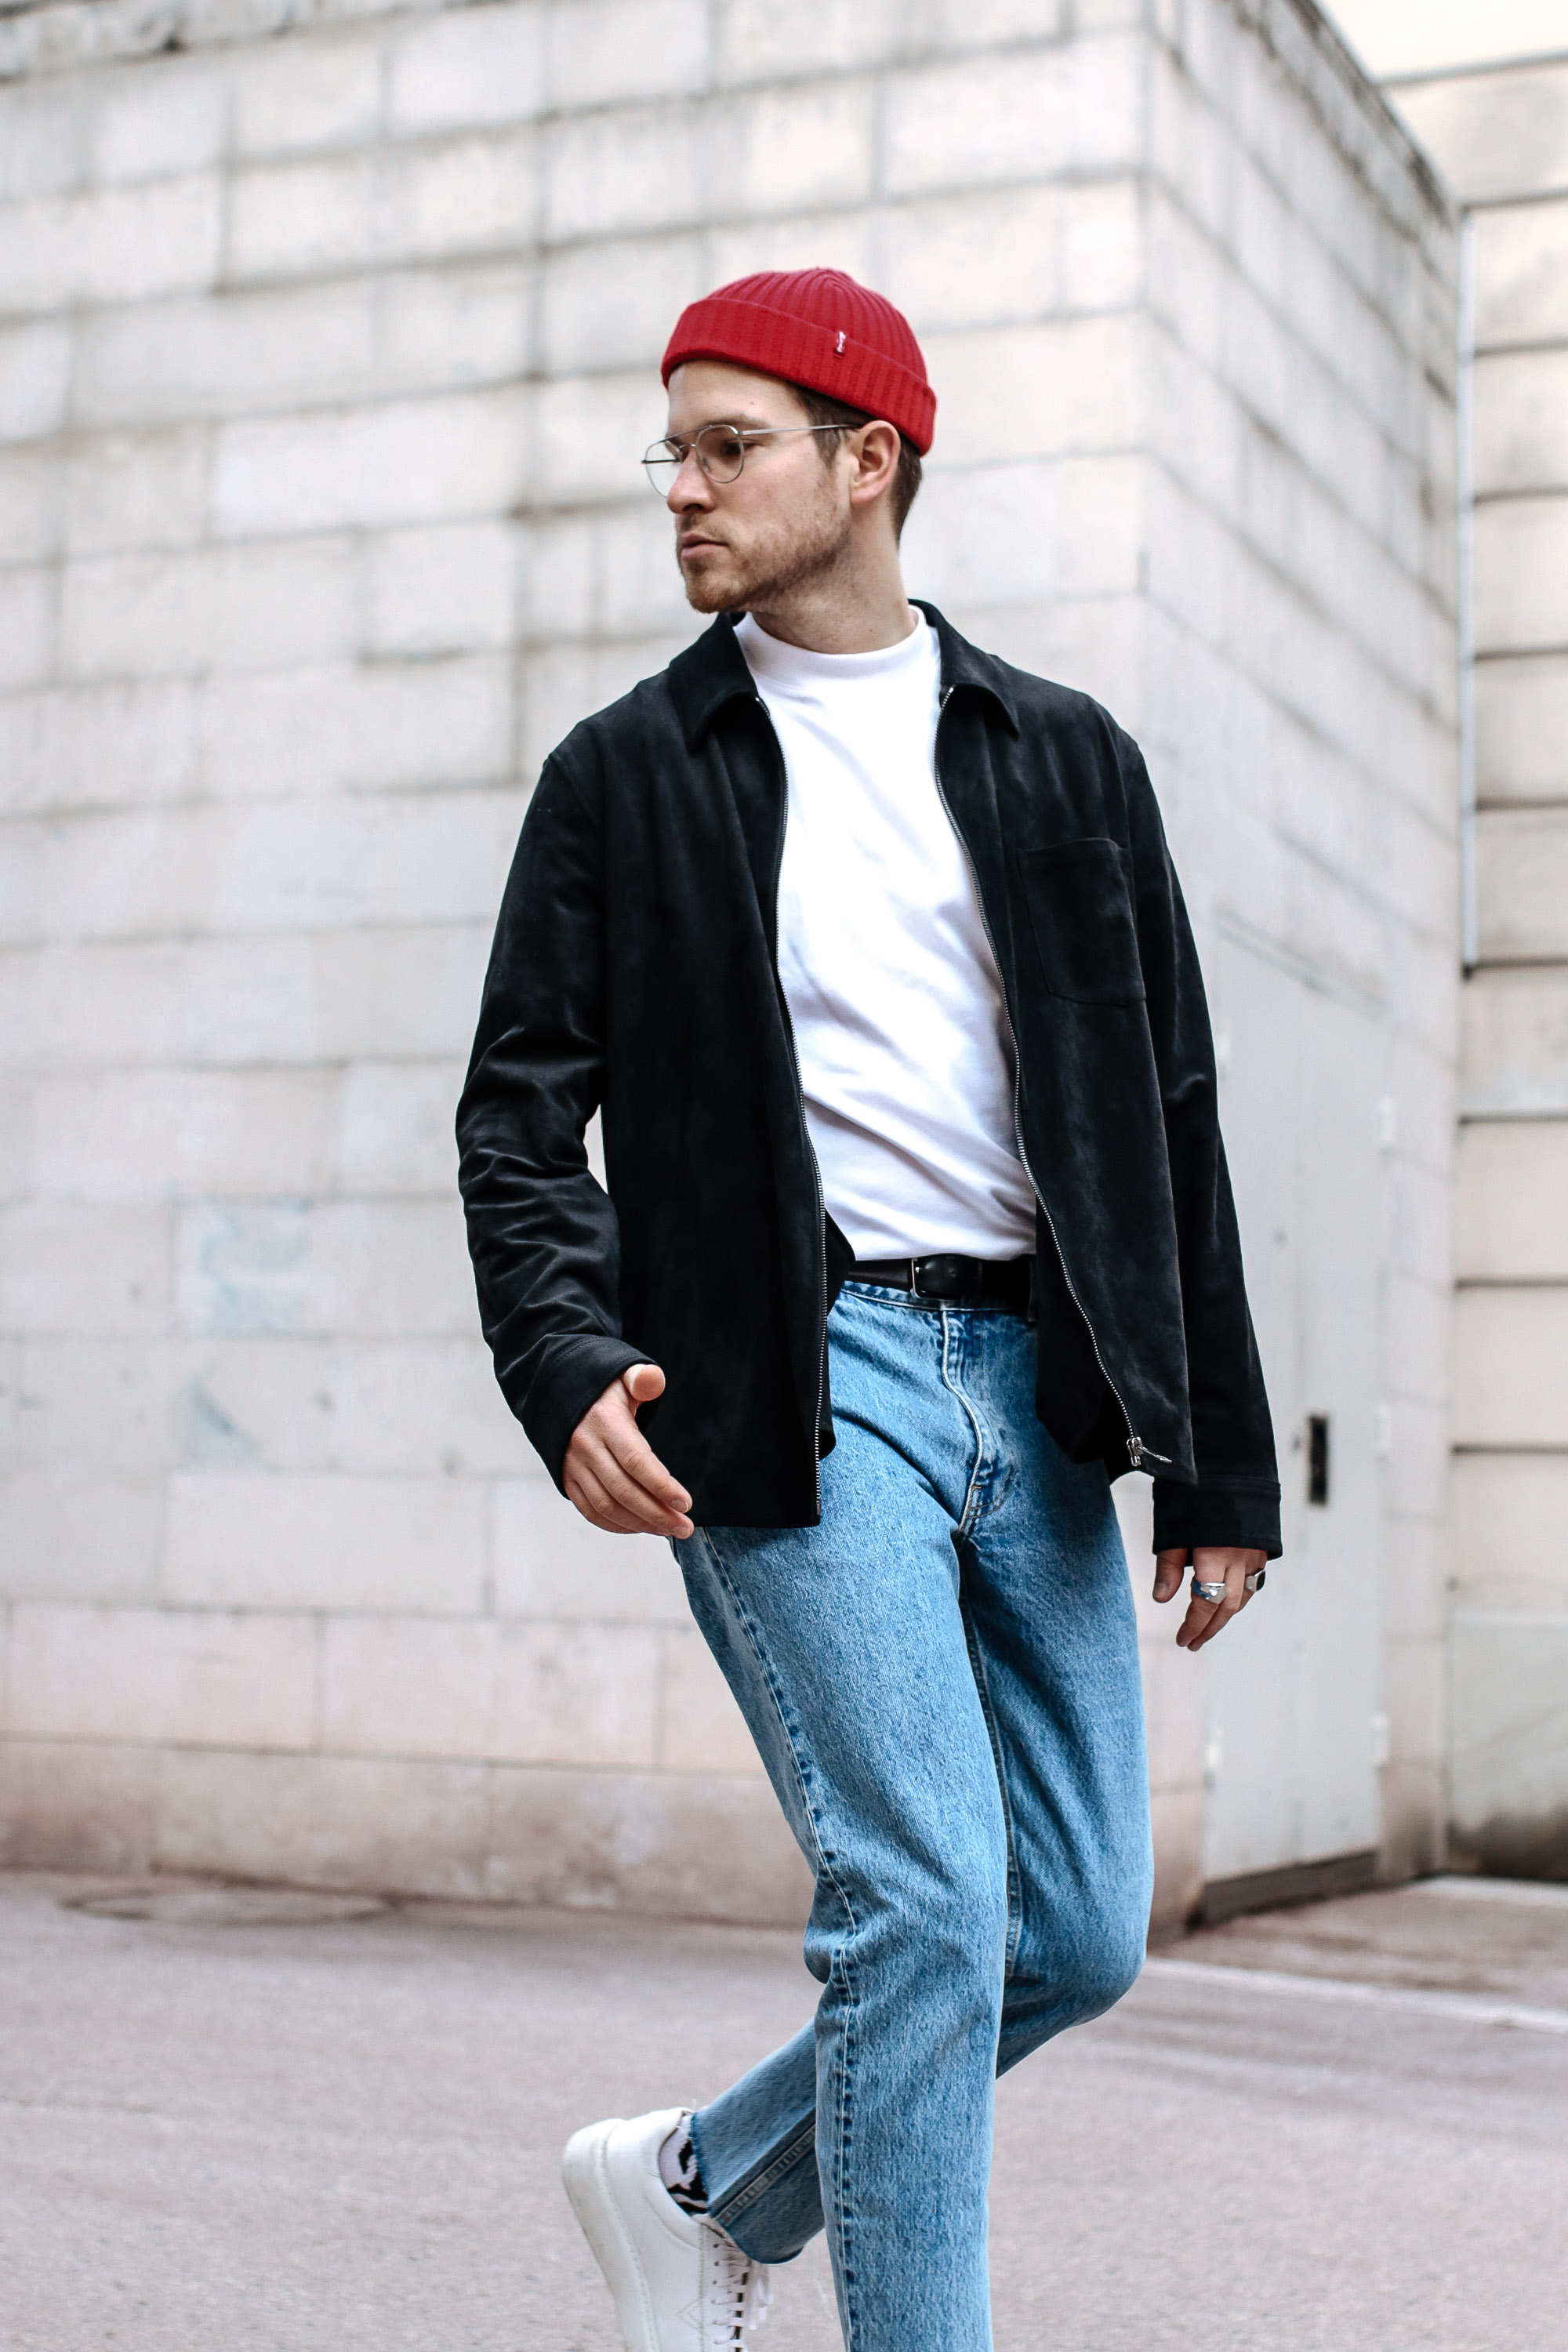 H&M Spring Icons by The Weeknd - Must Haves and Collection Highlights